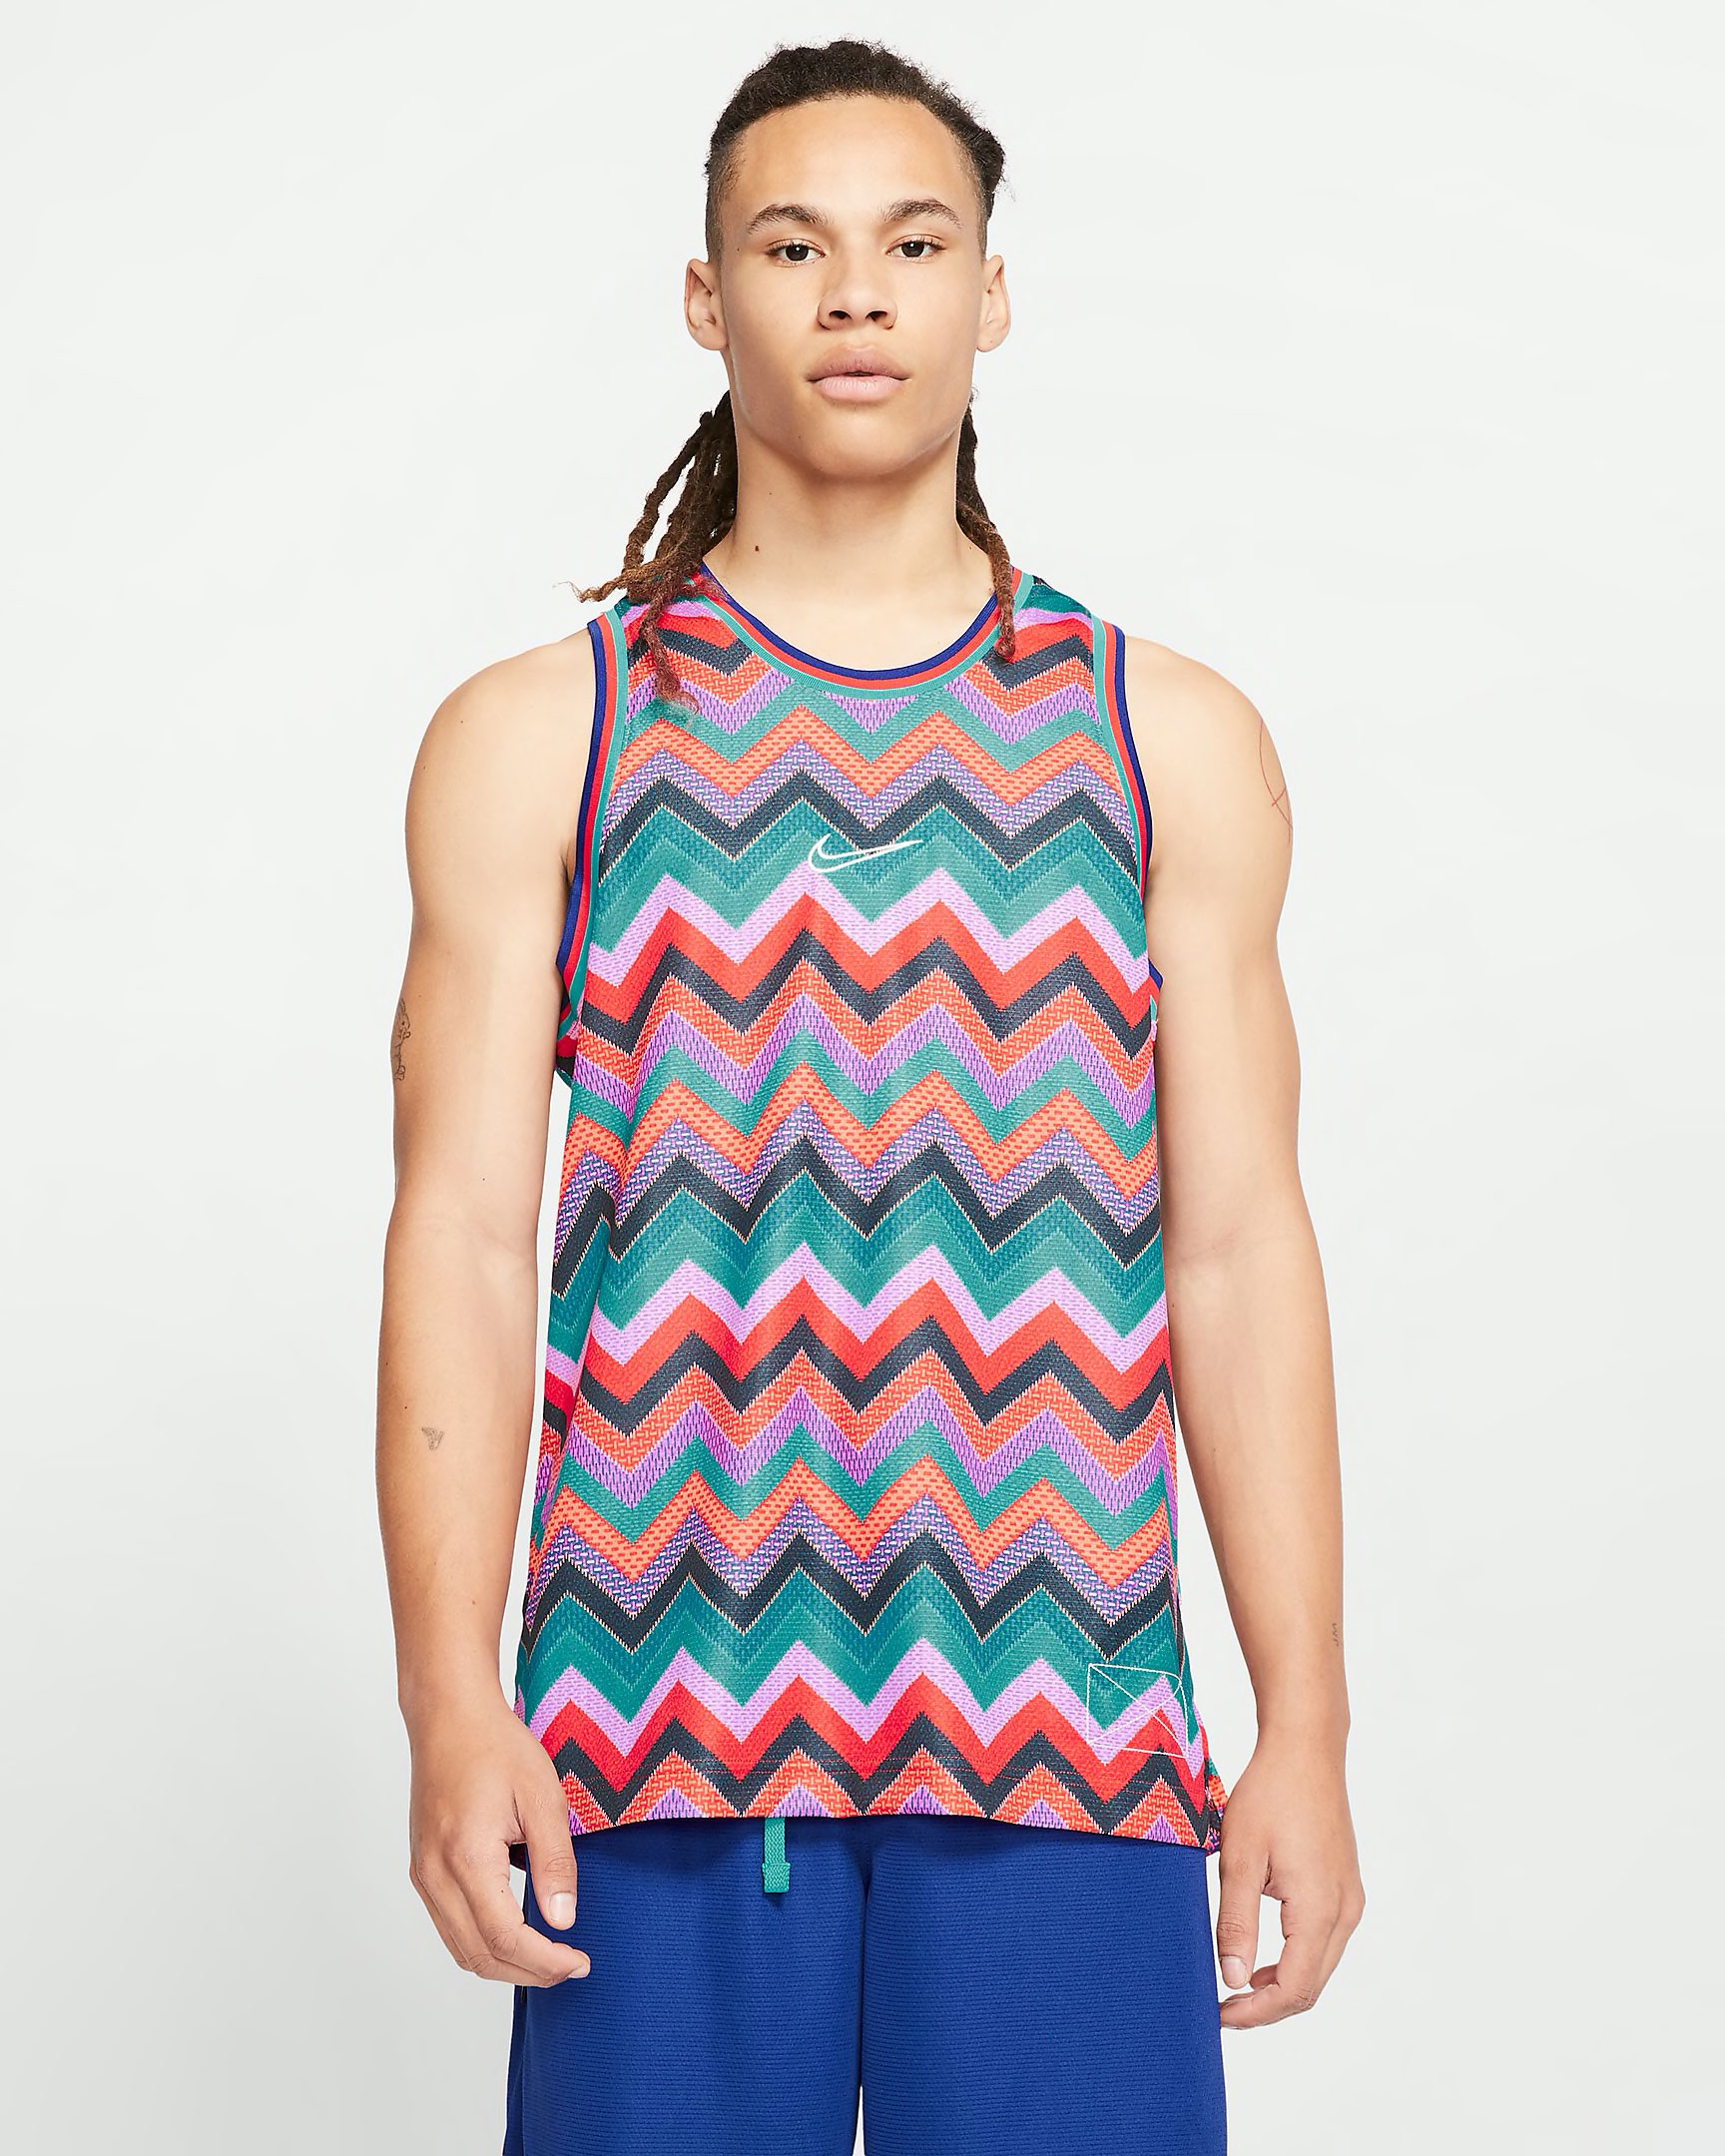 jordan-1-high-court-purple-nike-tank-top-match